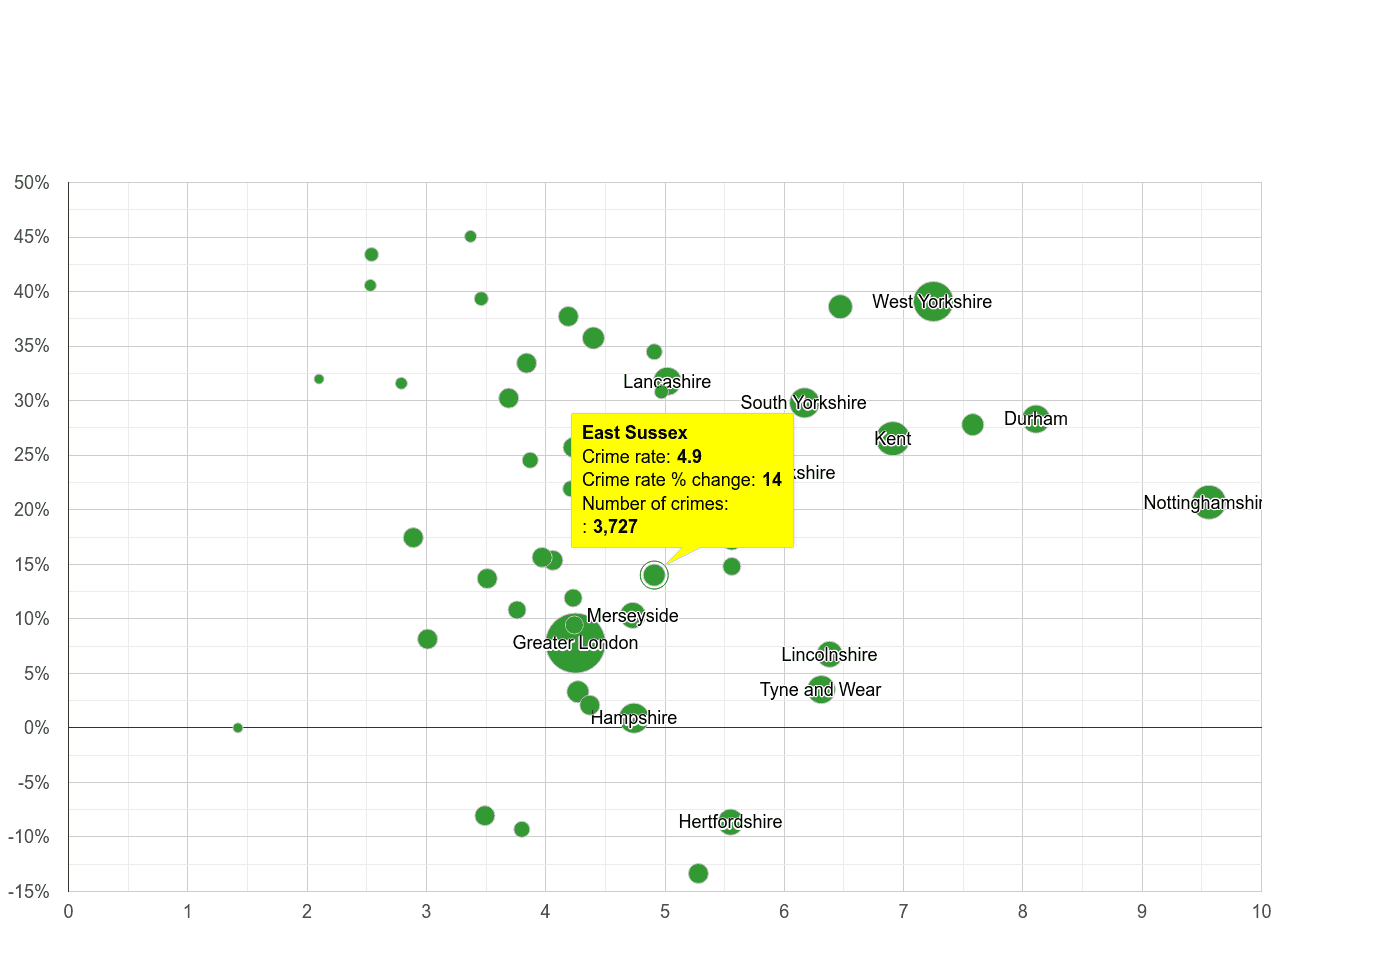 East Sussex shoplifting crime rate compared to other counties